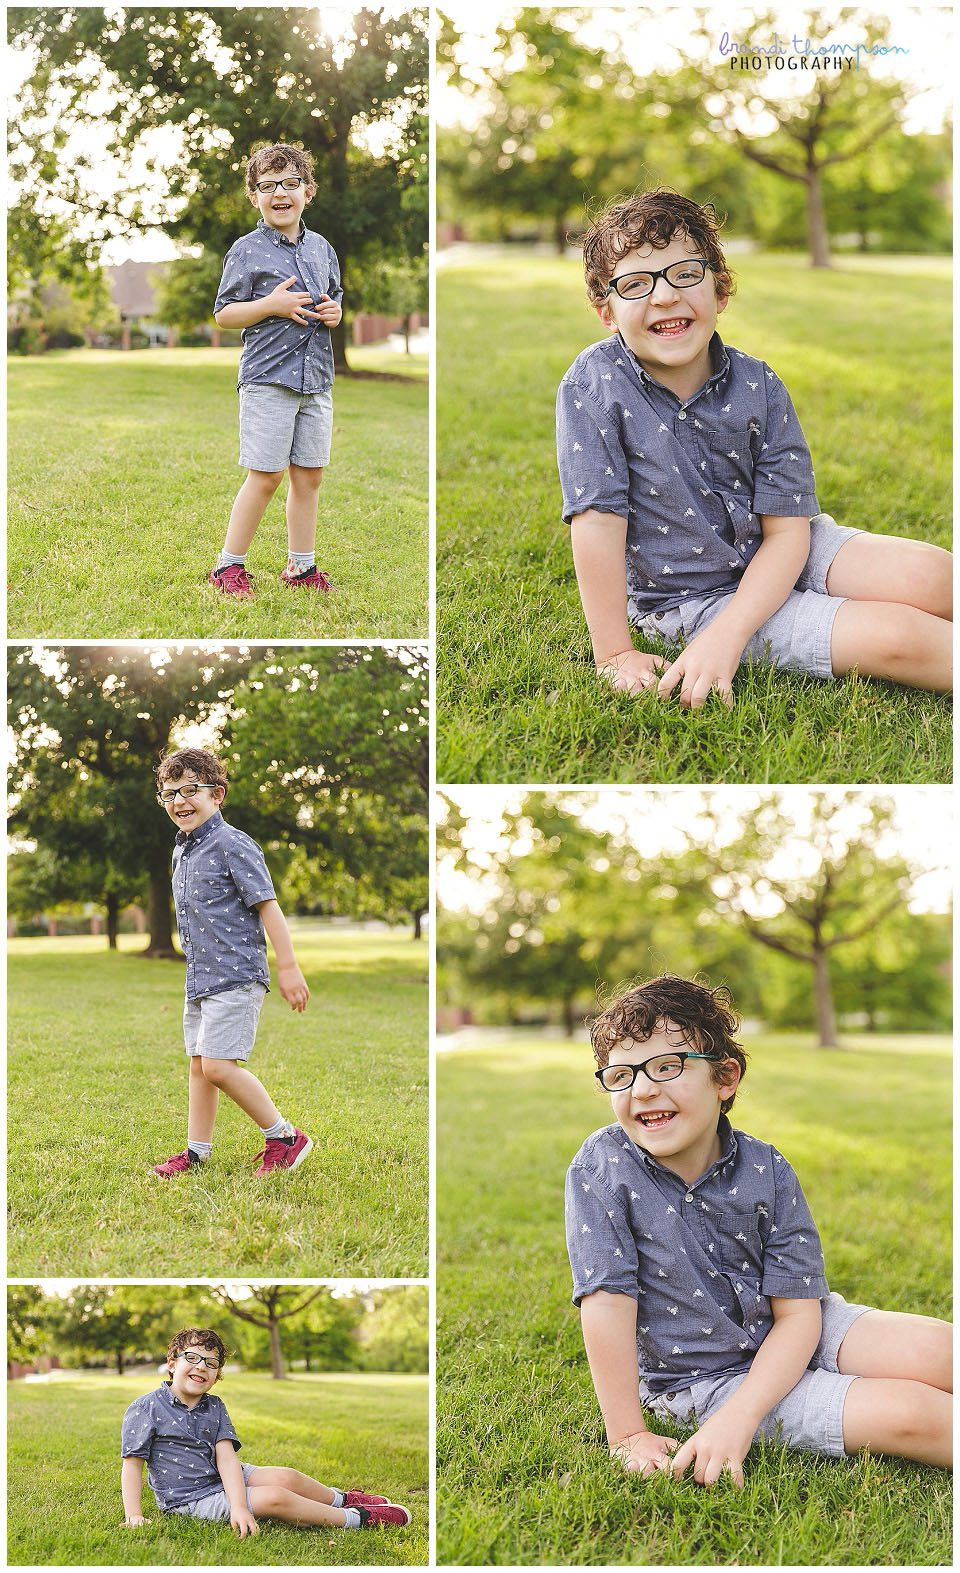 seven year old boy portraits in plano, tx - boy in blue shirt, tan shorts and glasses with red shoes